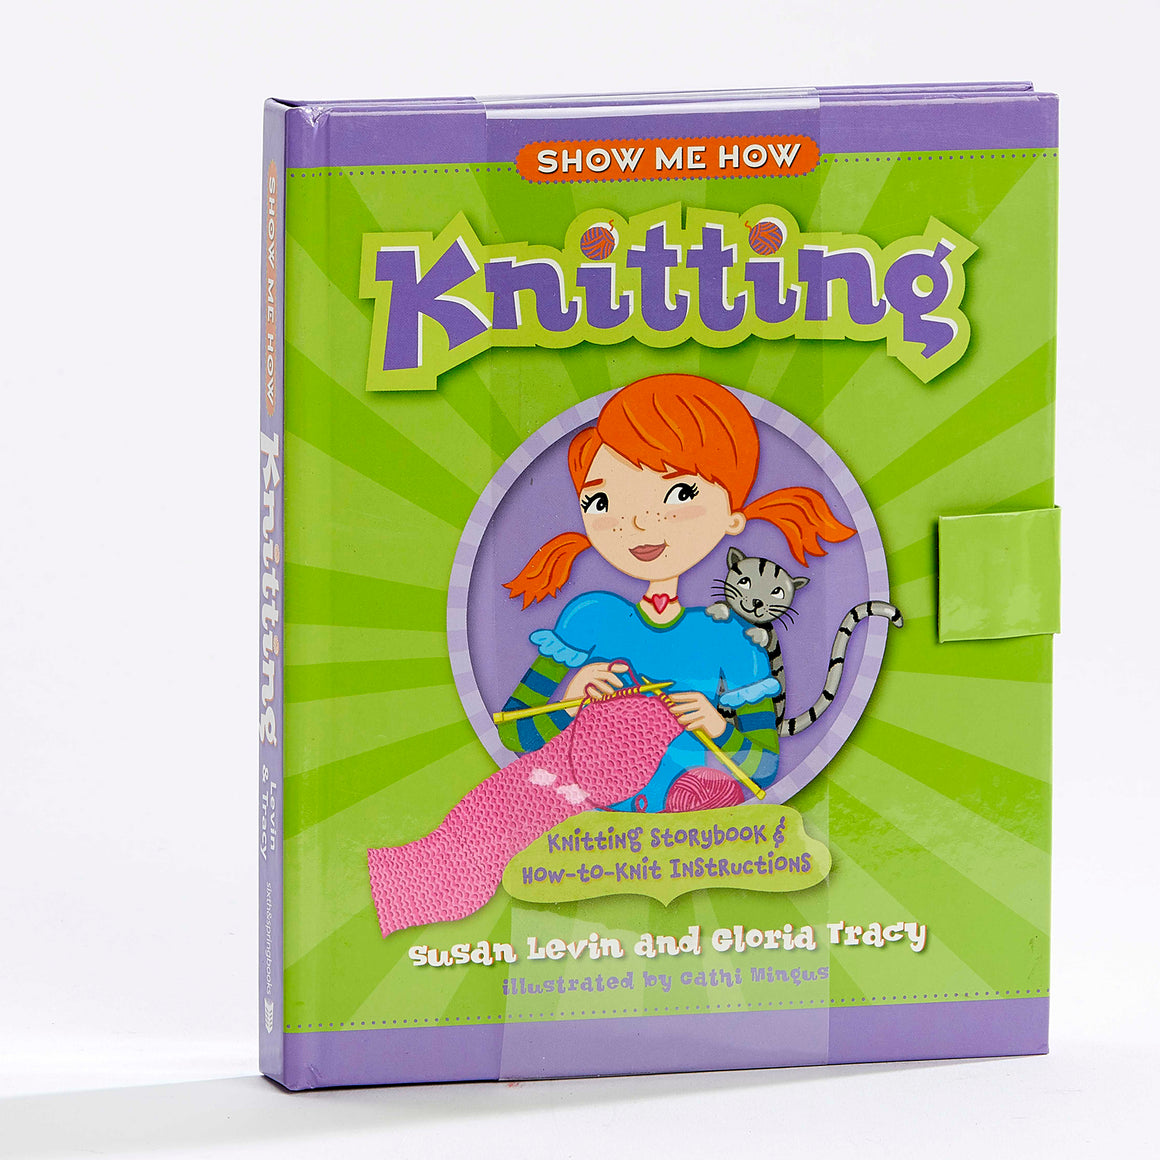 Show Me How: Knitting